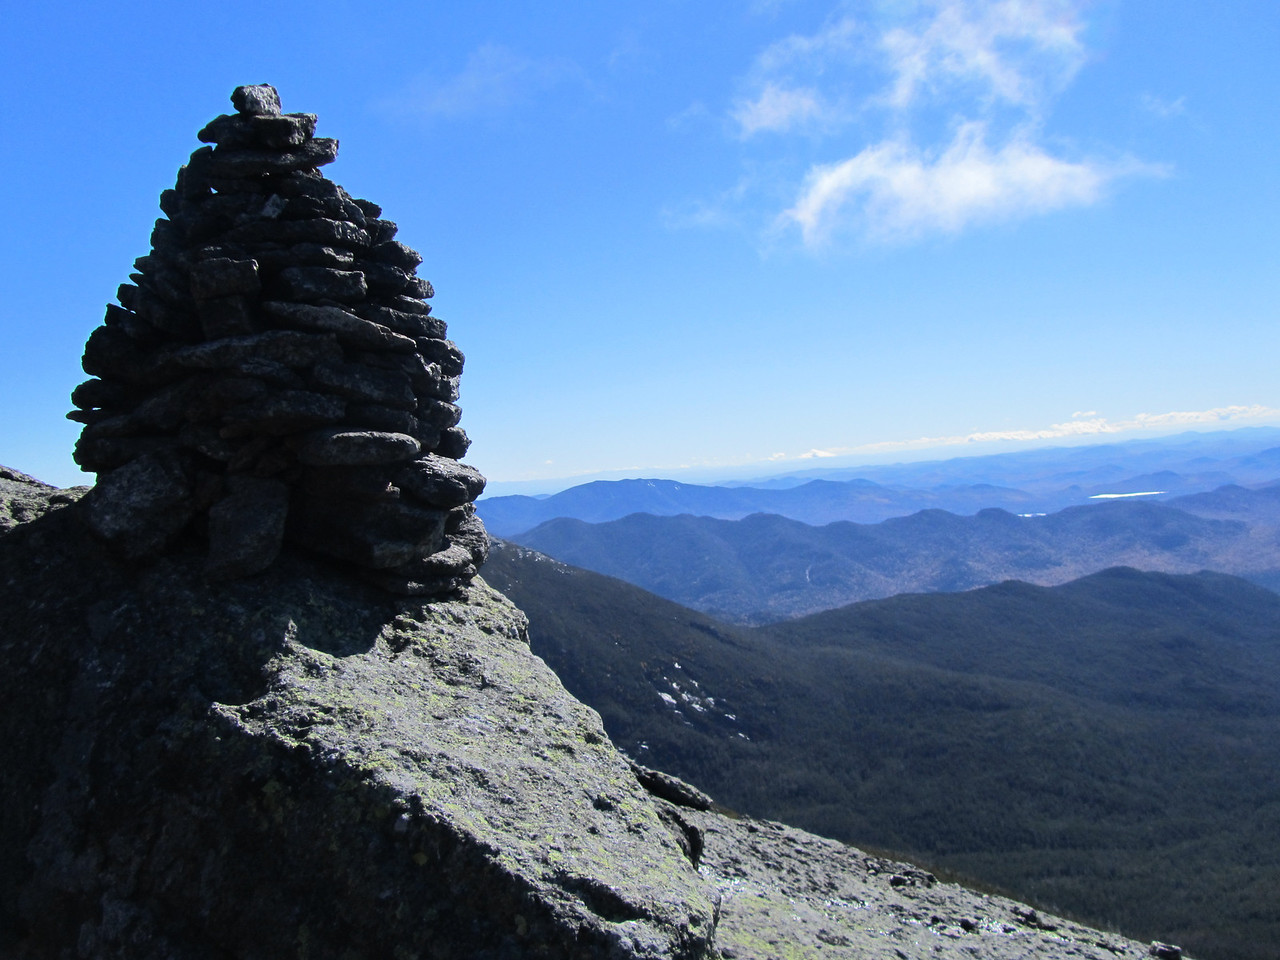 Someone spent a lot of time building this cairn.